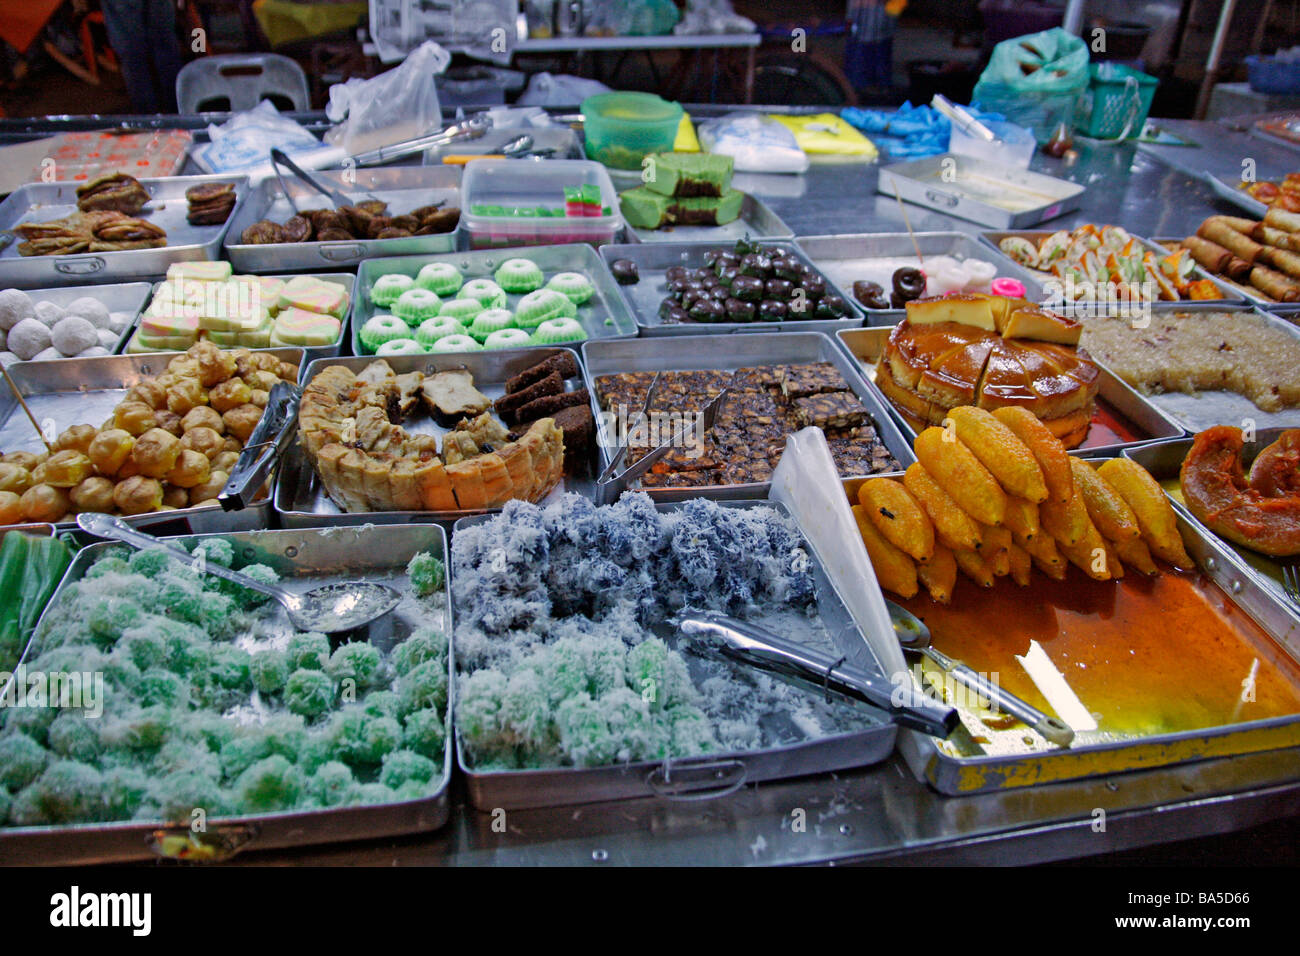 Malay sweets (kuih) on sale at a night market in Kota Bharu - Stock Image